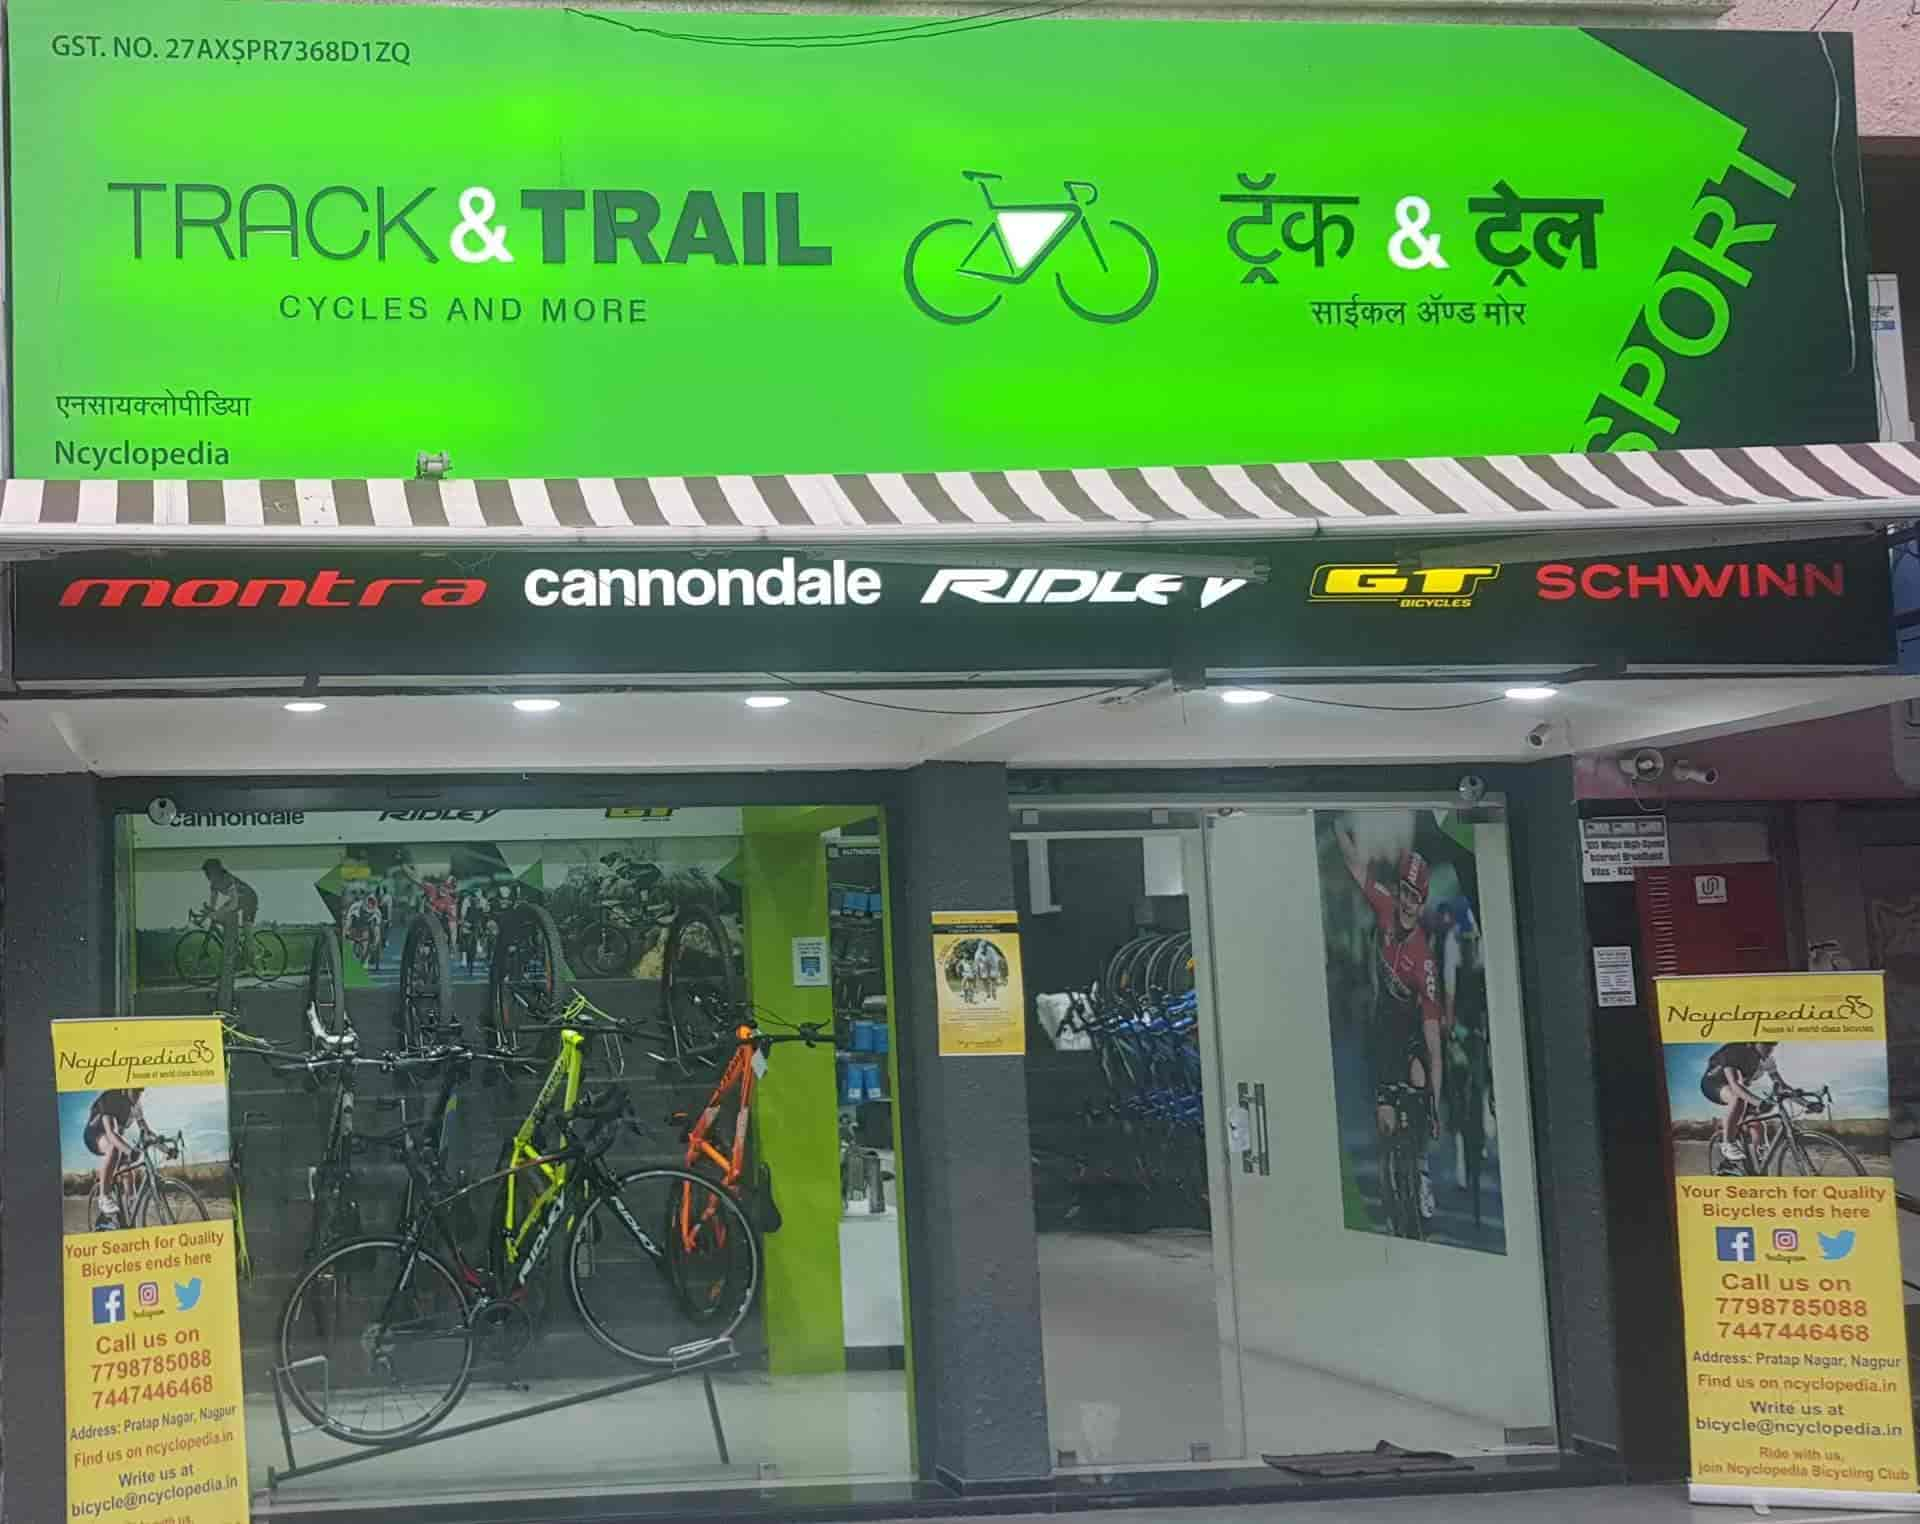 Bicycle Dealers in Nagpur - Cycle Shops & Stores - Justdial